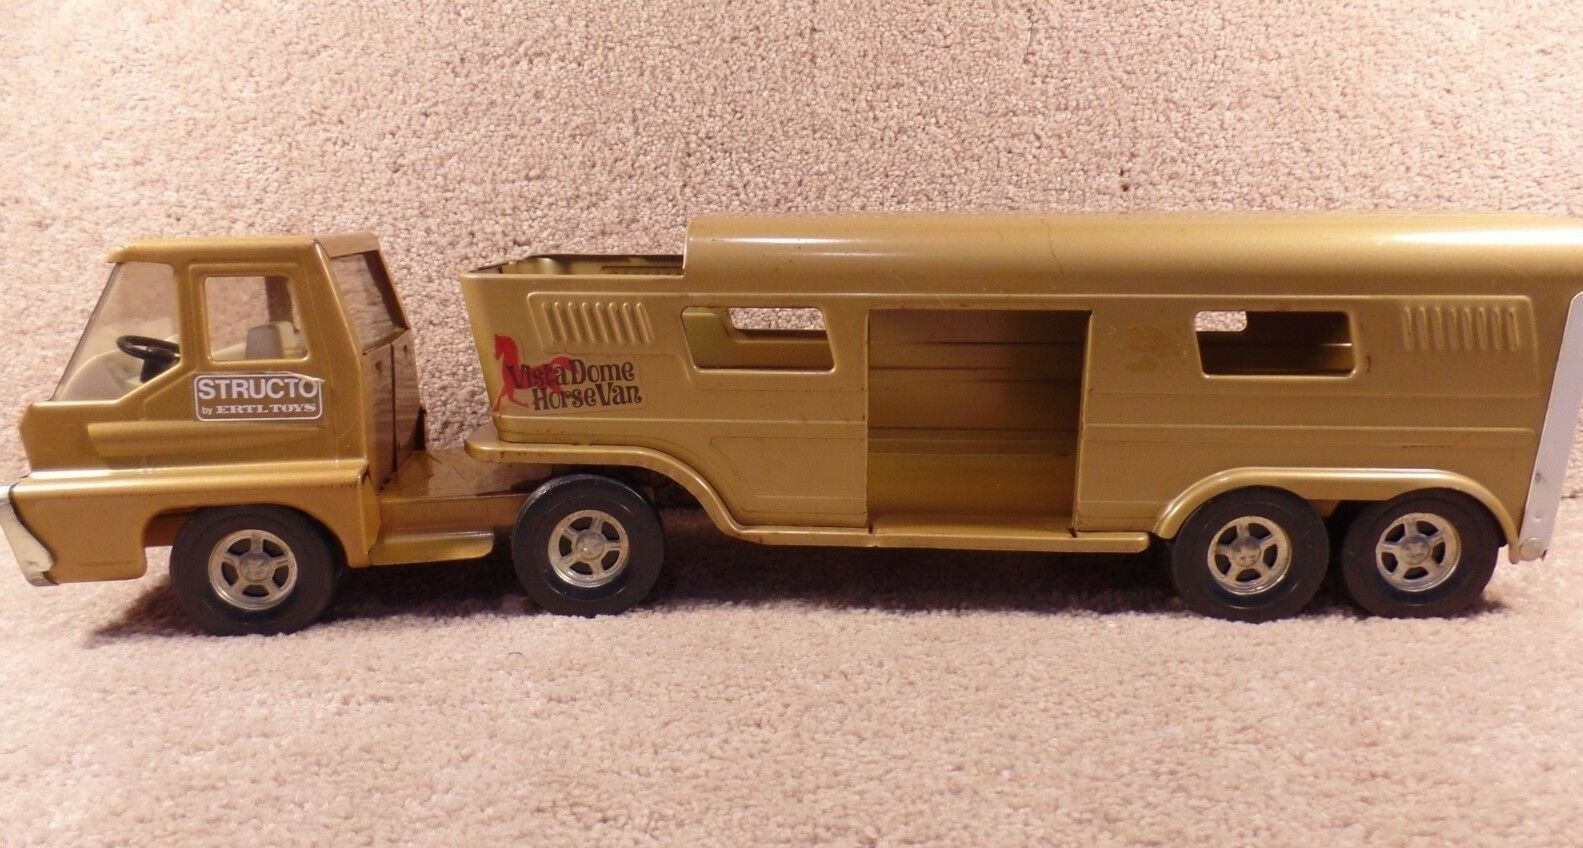 1960's ERTL Toys Structo Pressed Steel Vista-Dome Horse Van Trailer And Semi